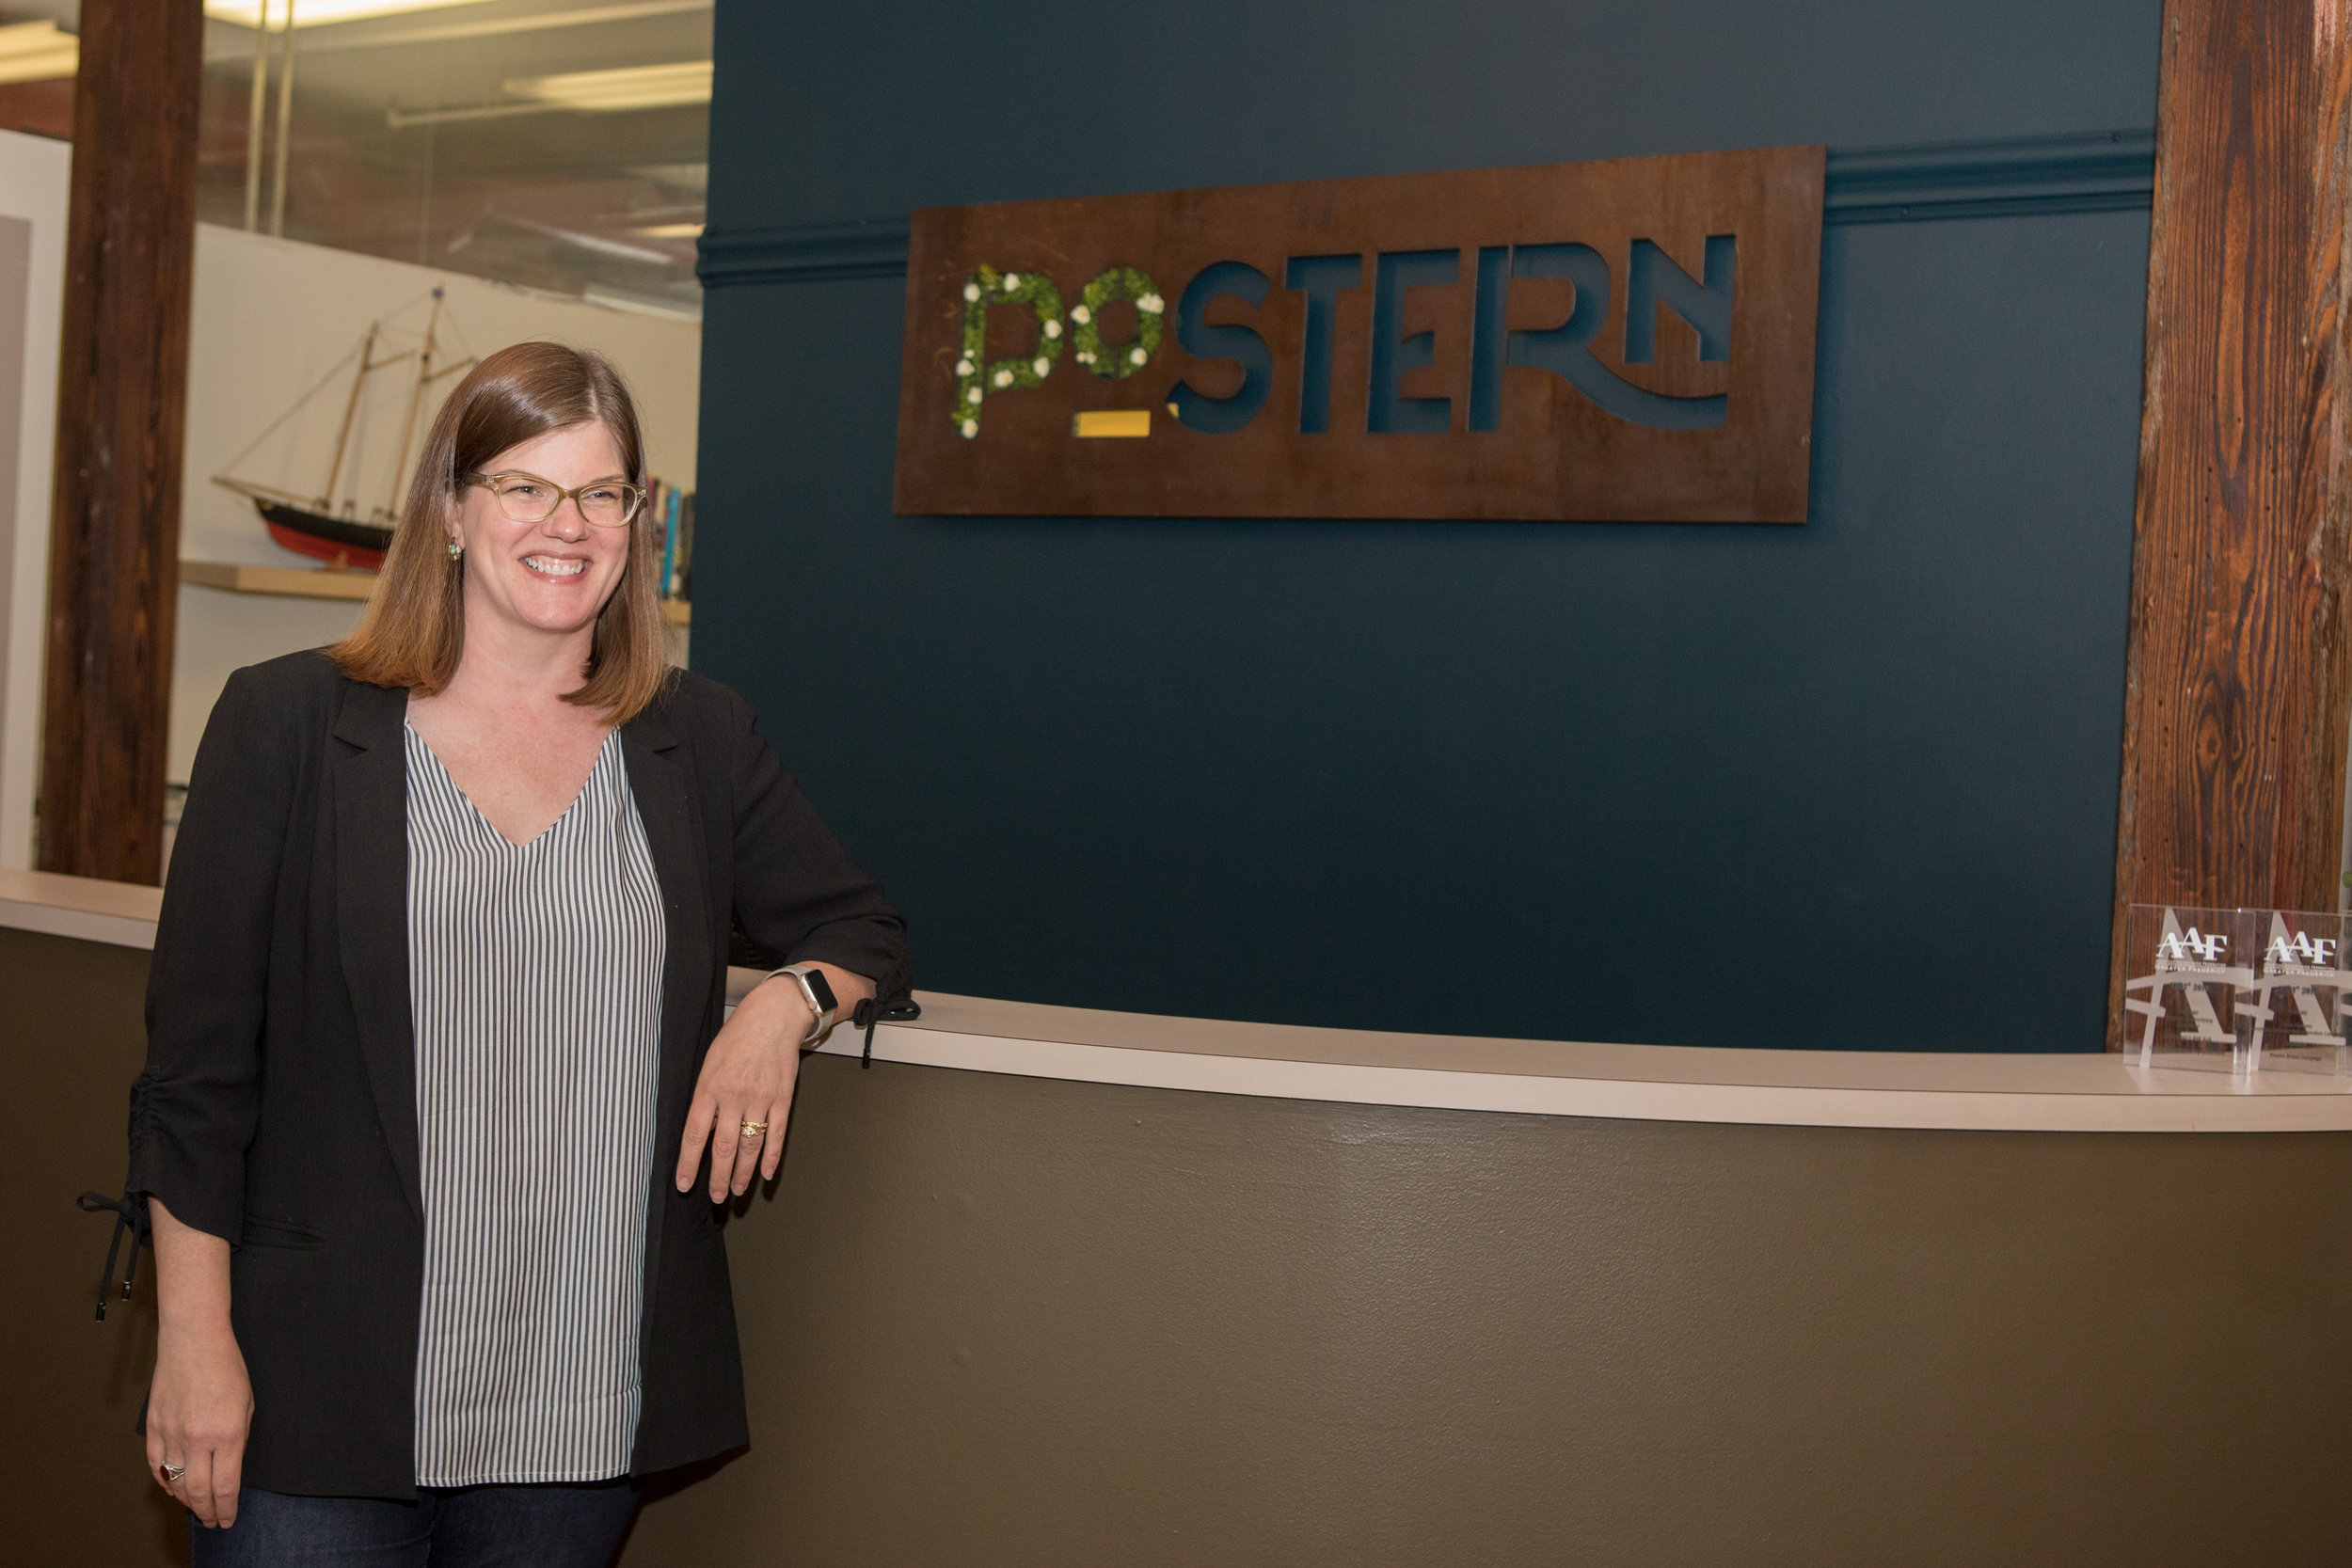 Emily Dorr poses next to the Postern Agency sign.